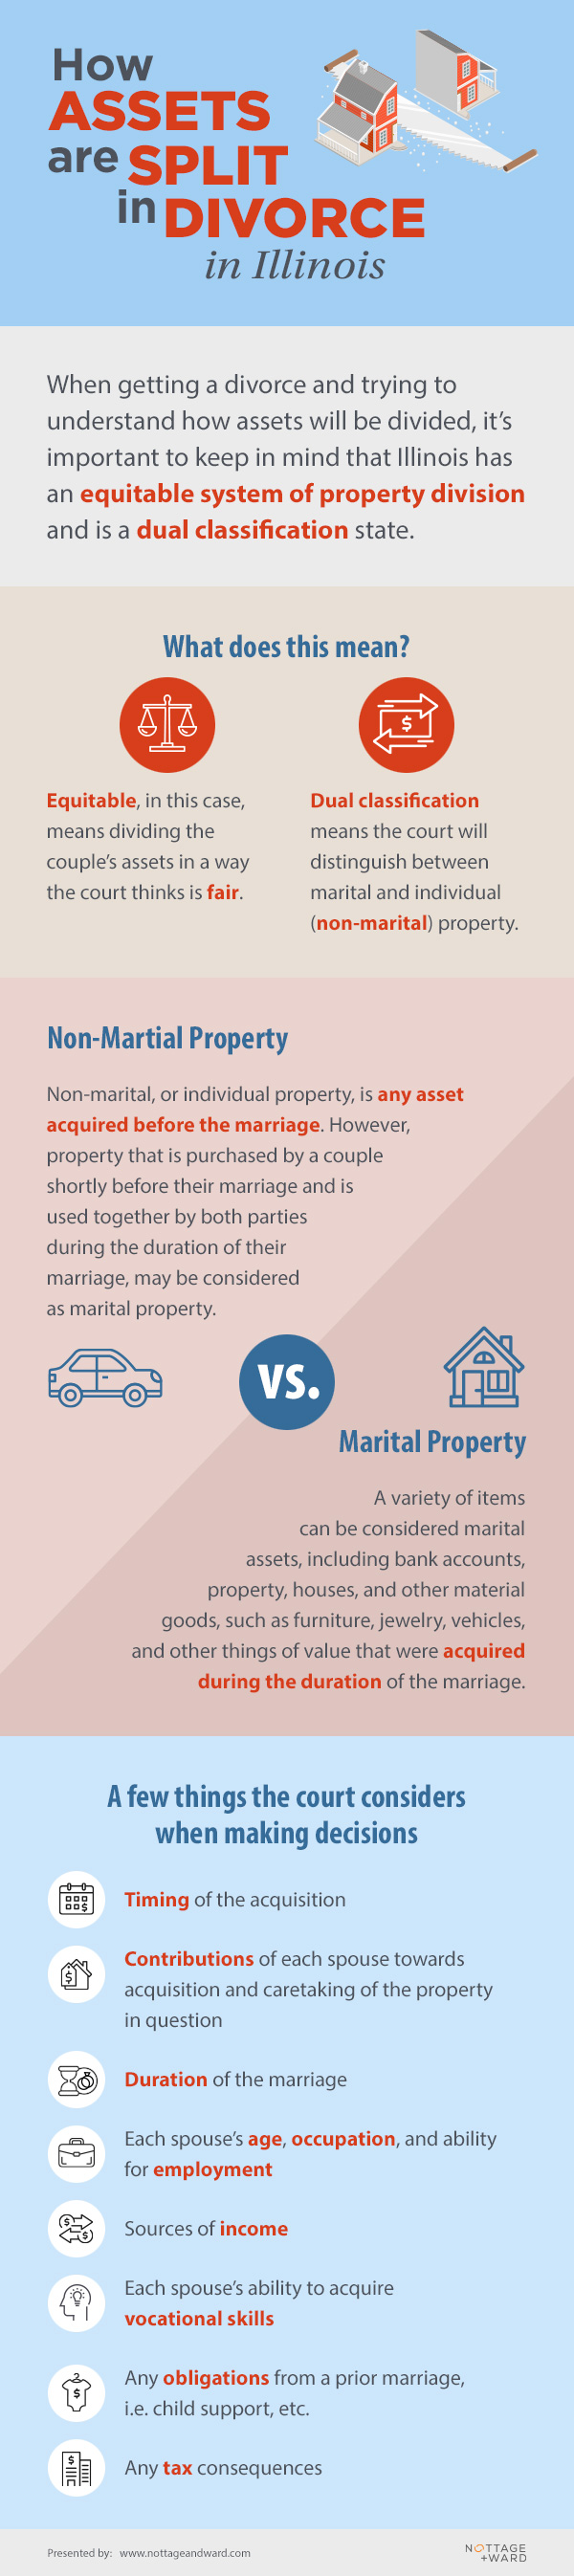 Nottage and Ward, LLP Presents: Splitting Assets Infographic